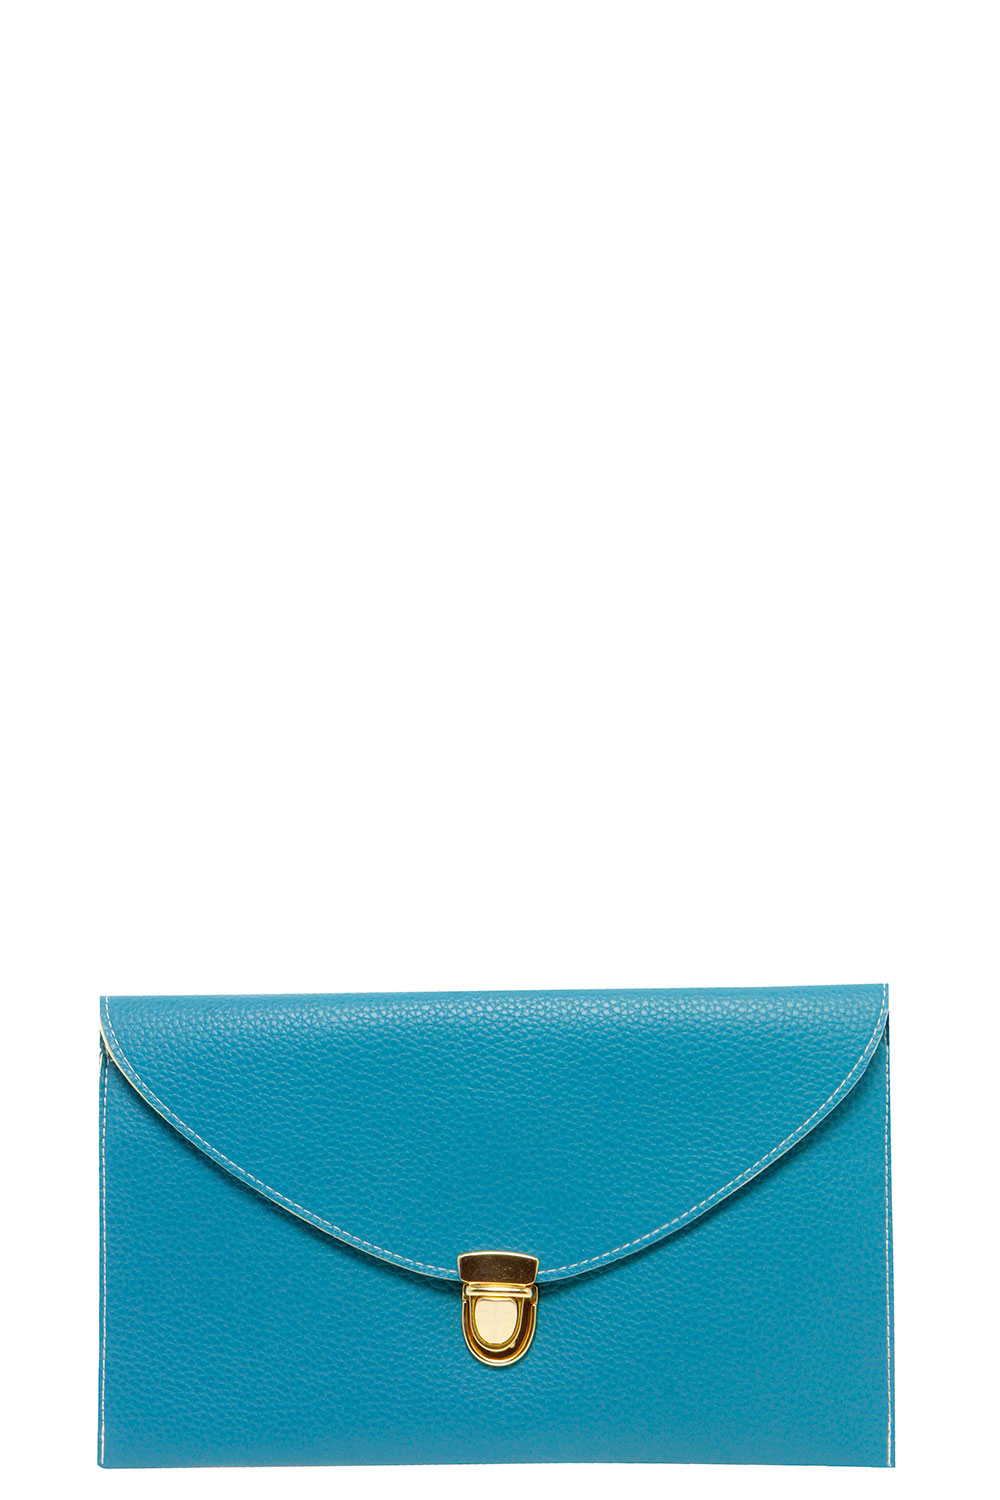 Lily Clasp Fasten Clutch Bag - blue